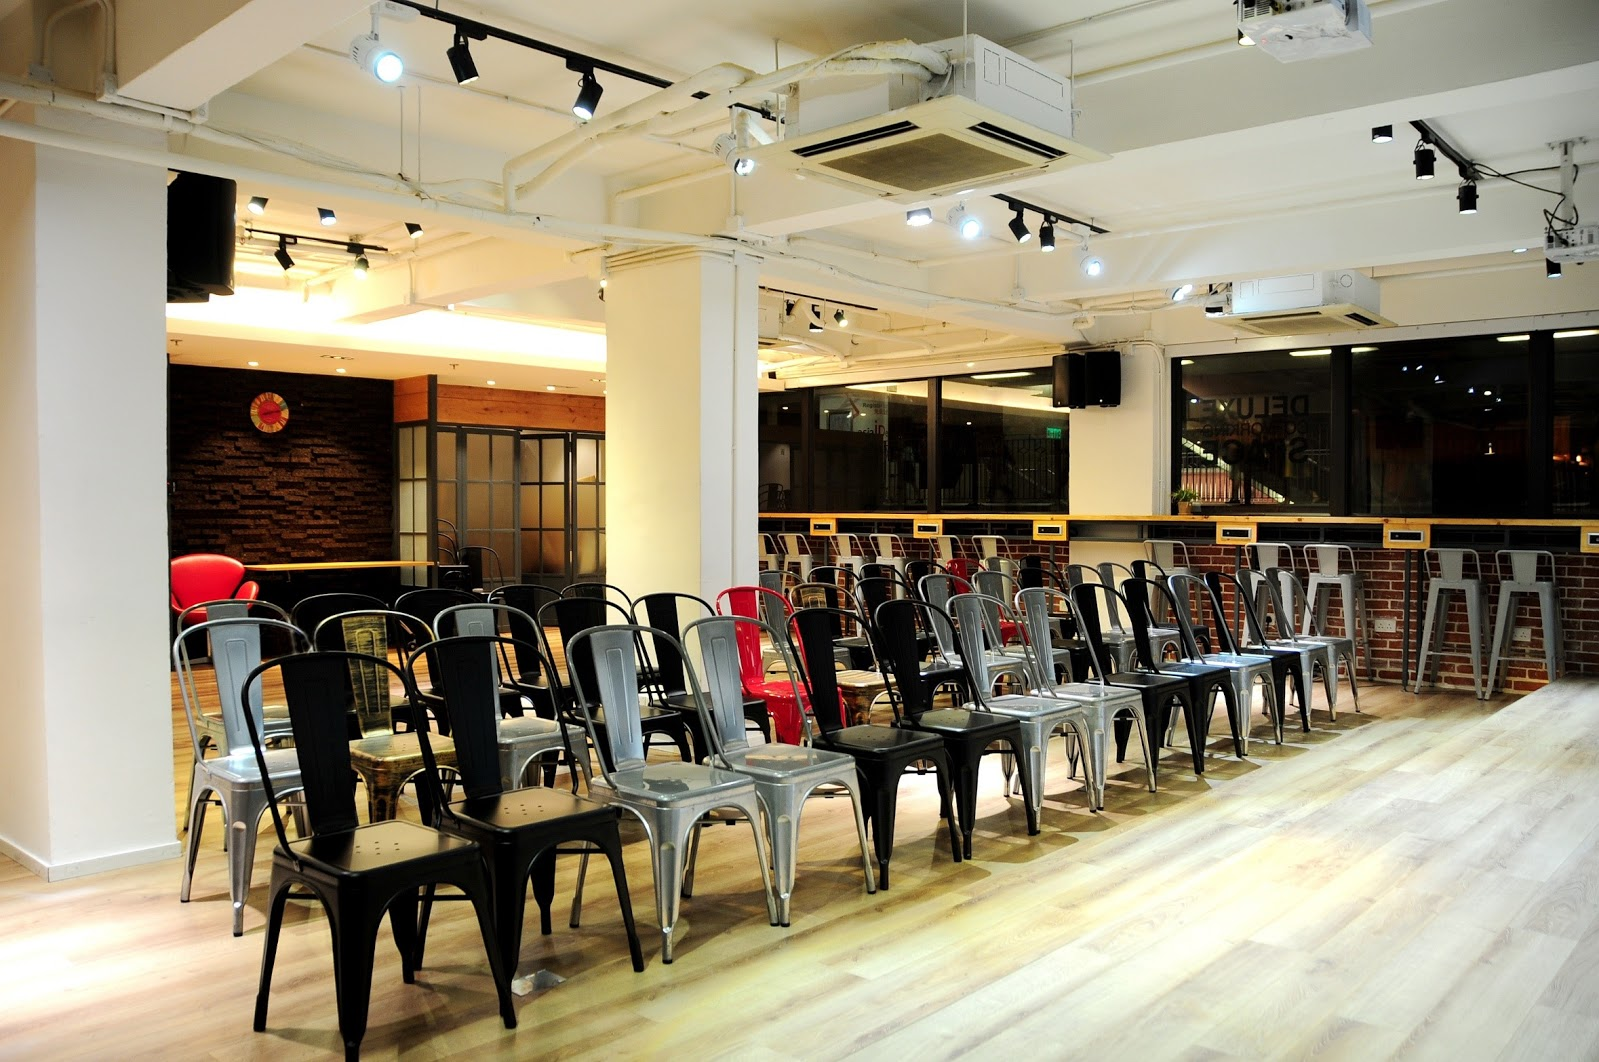 Kowrk – Business Conference Space and Meeting Rooms in Wan Chai, Hong Kong